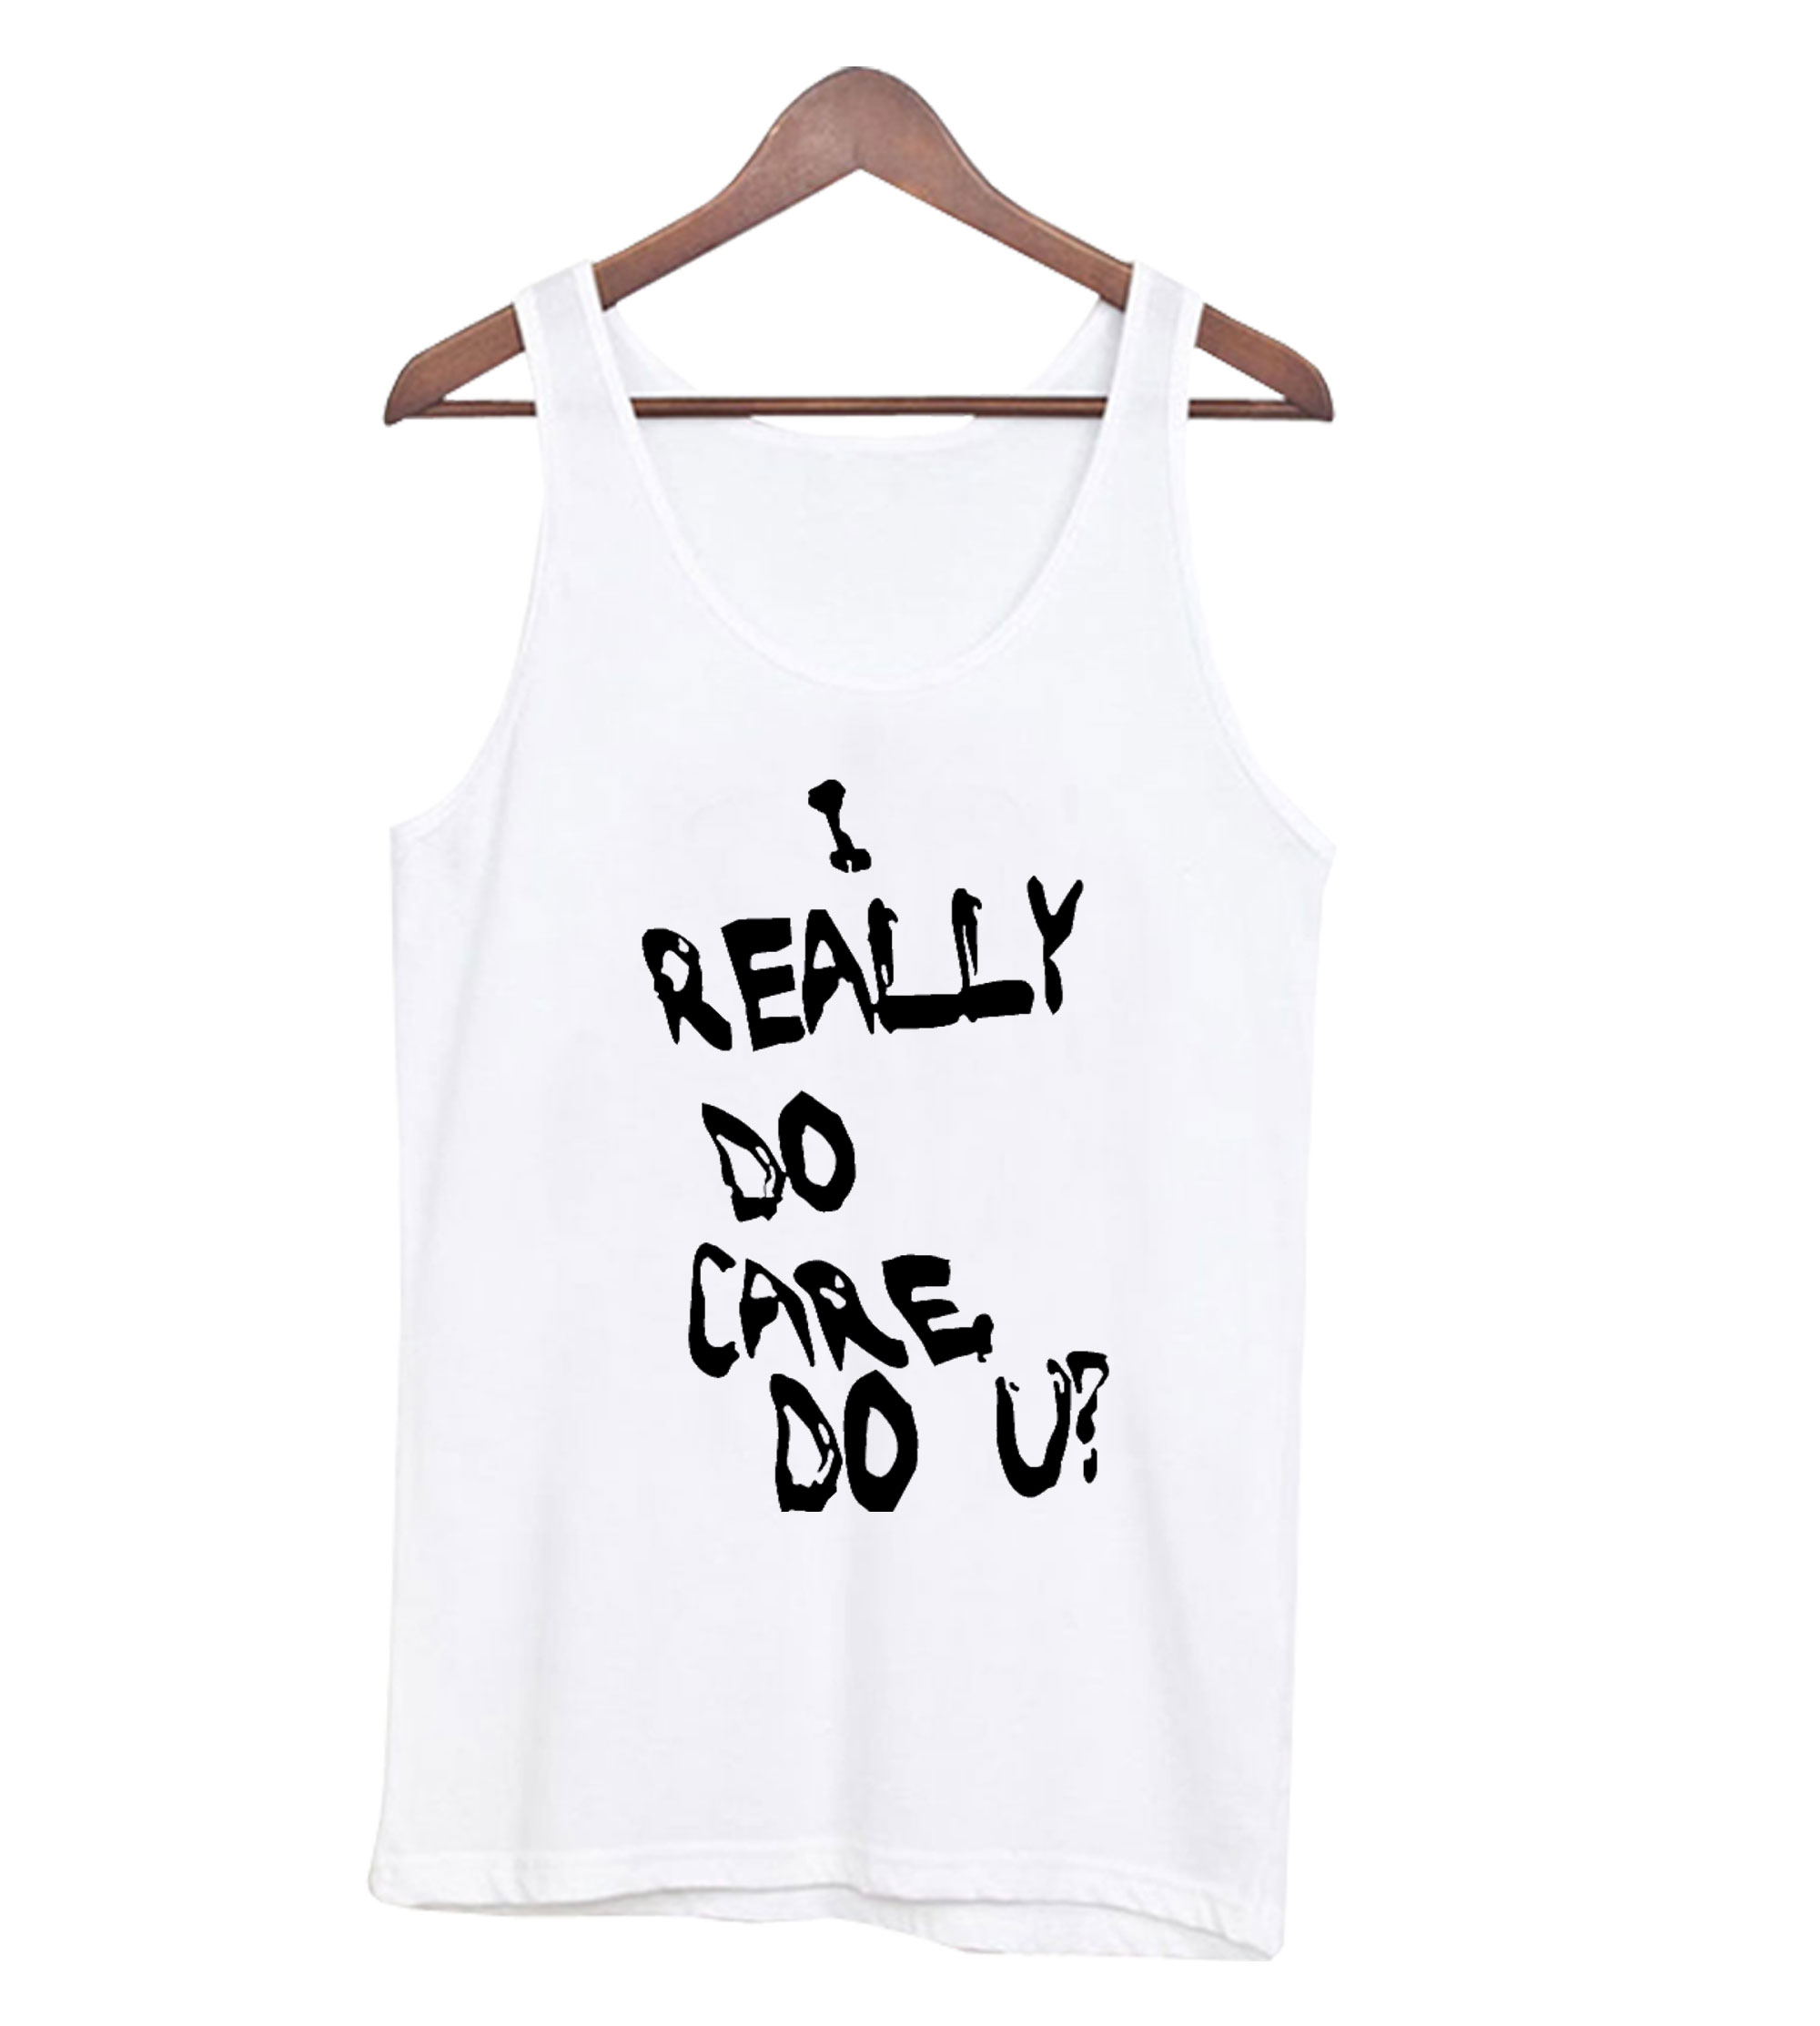 I Really Do Care Do U Tanktop